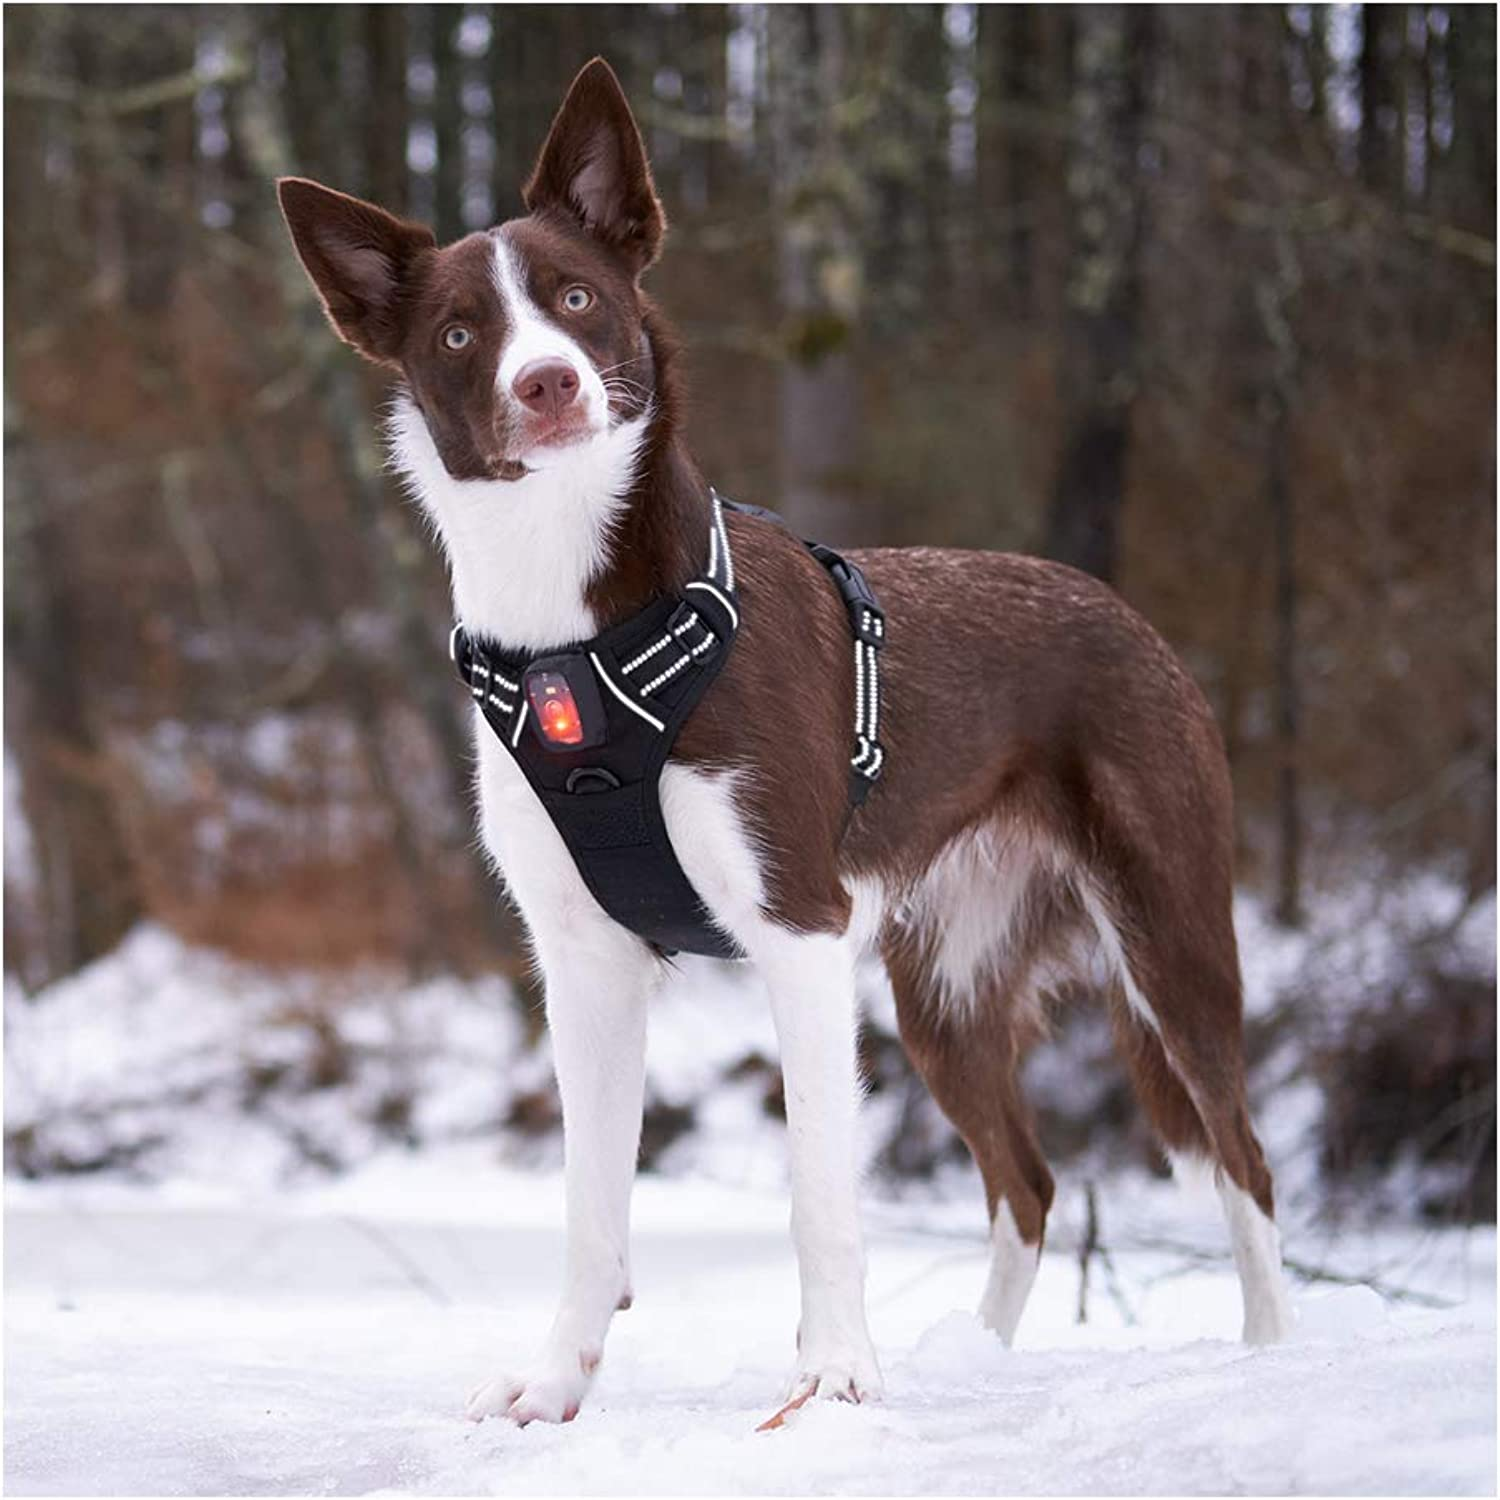 Rabbitgoo LED Dog Harness  USB Rechargeable  Illuminated No Pull Dog Vest Harness, Reflective Safety Pet Vest for Large Dogs  Adjustable, Comfort Padded, Easy Control (Black, Large)